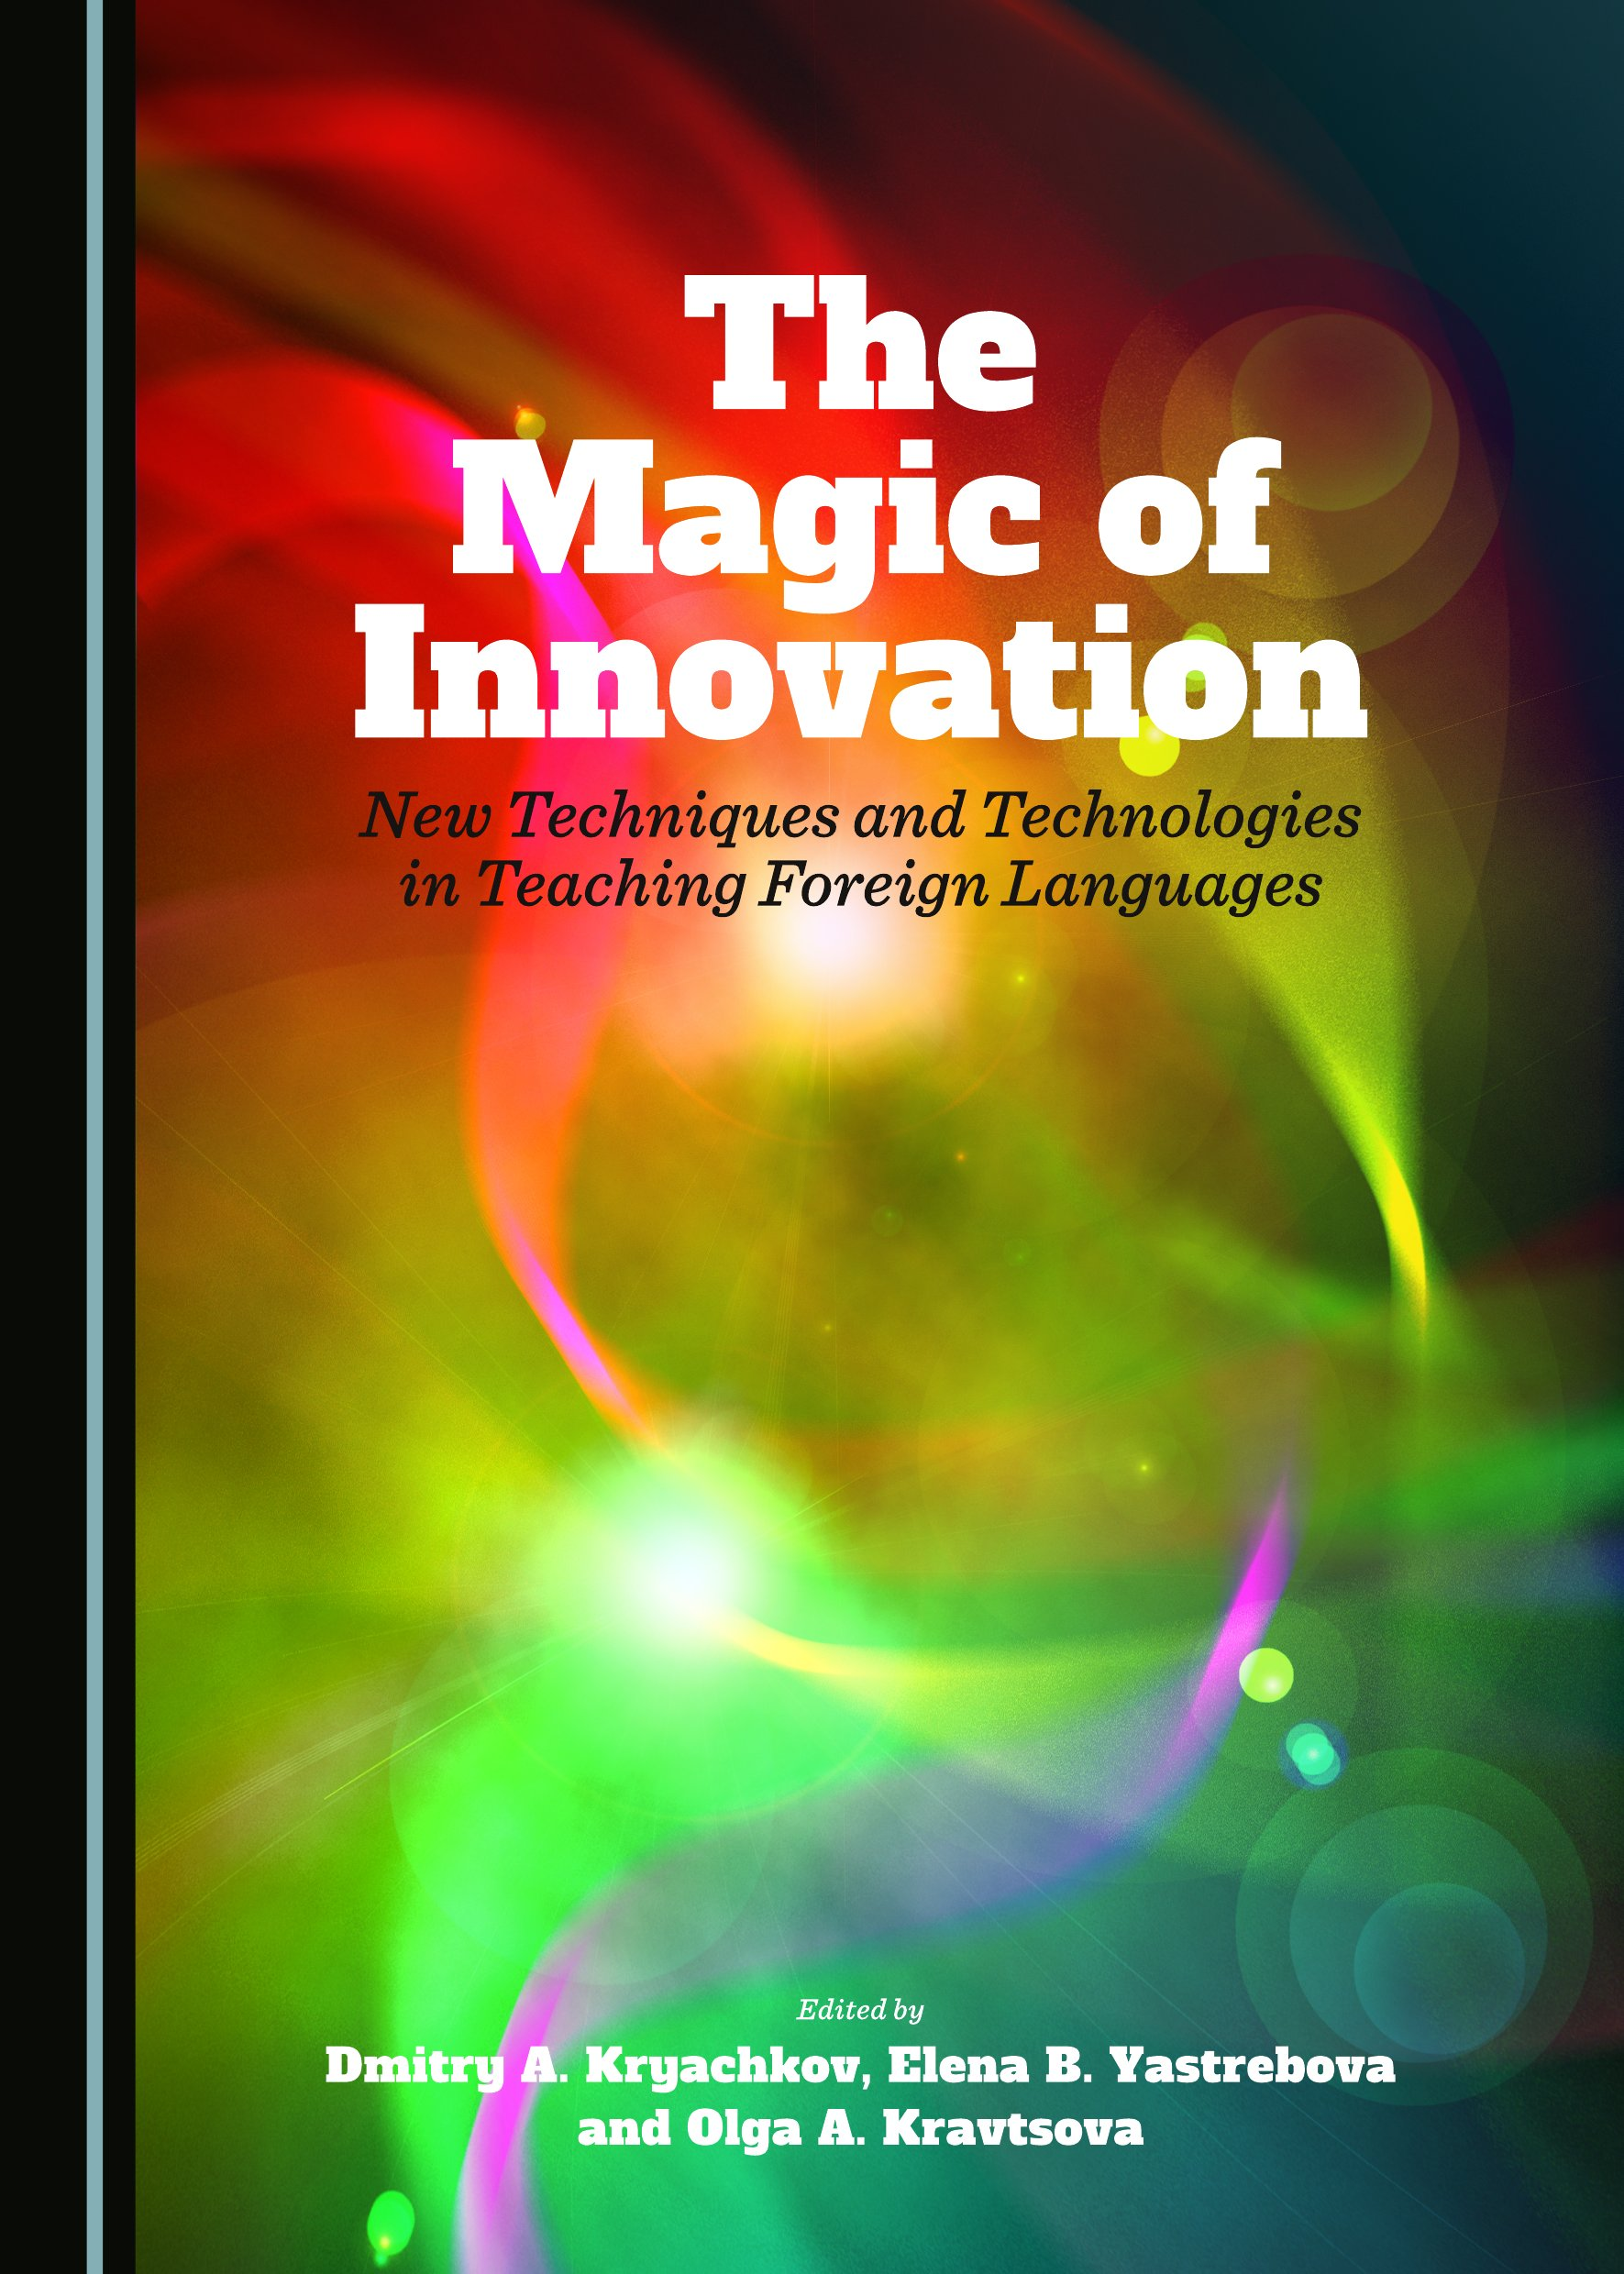 The Magic of Innovation: New Techniques and Technologies in Teaching Foreign Languages